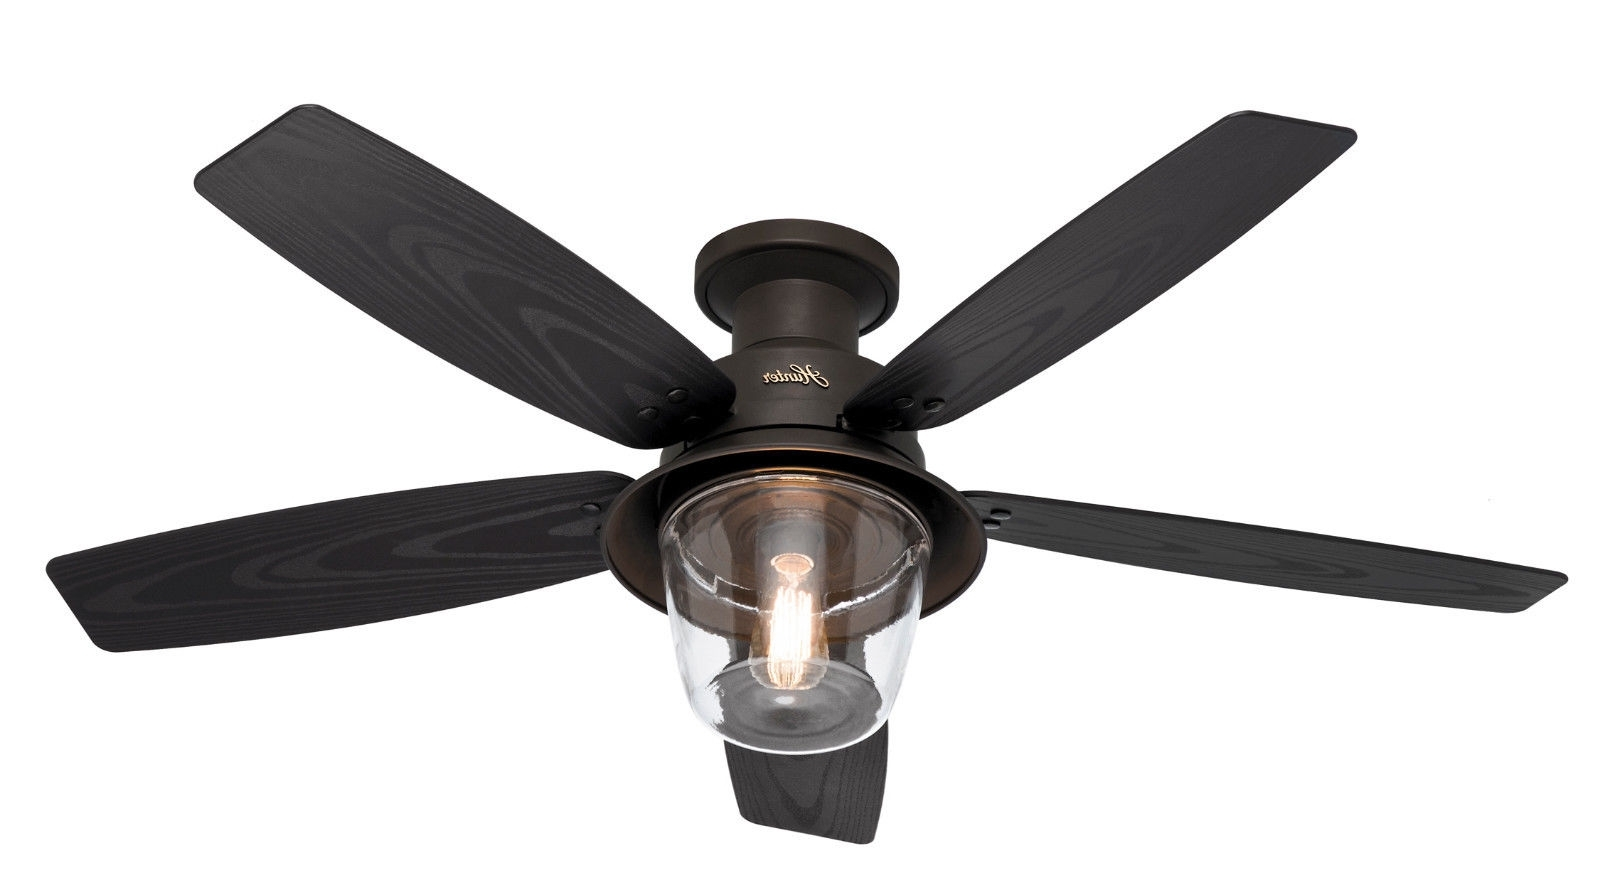 Favorite Ceiling Fan: Breathtaking Black Industrial Ceiling Fan Ideas With Industrial Outdoor Ceiling Fans With Light (View 9 of 20)